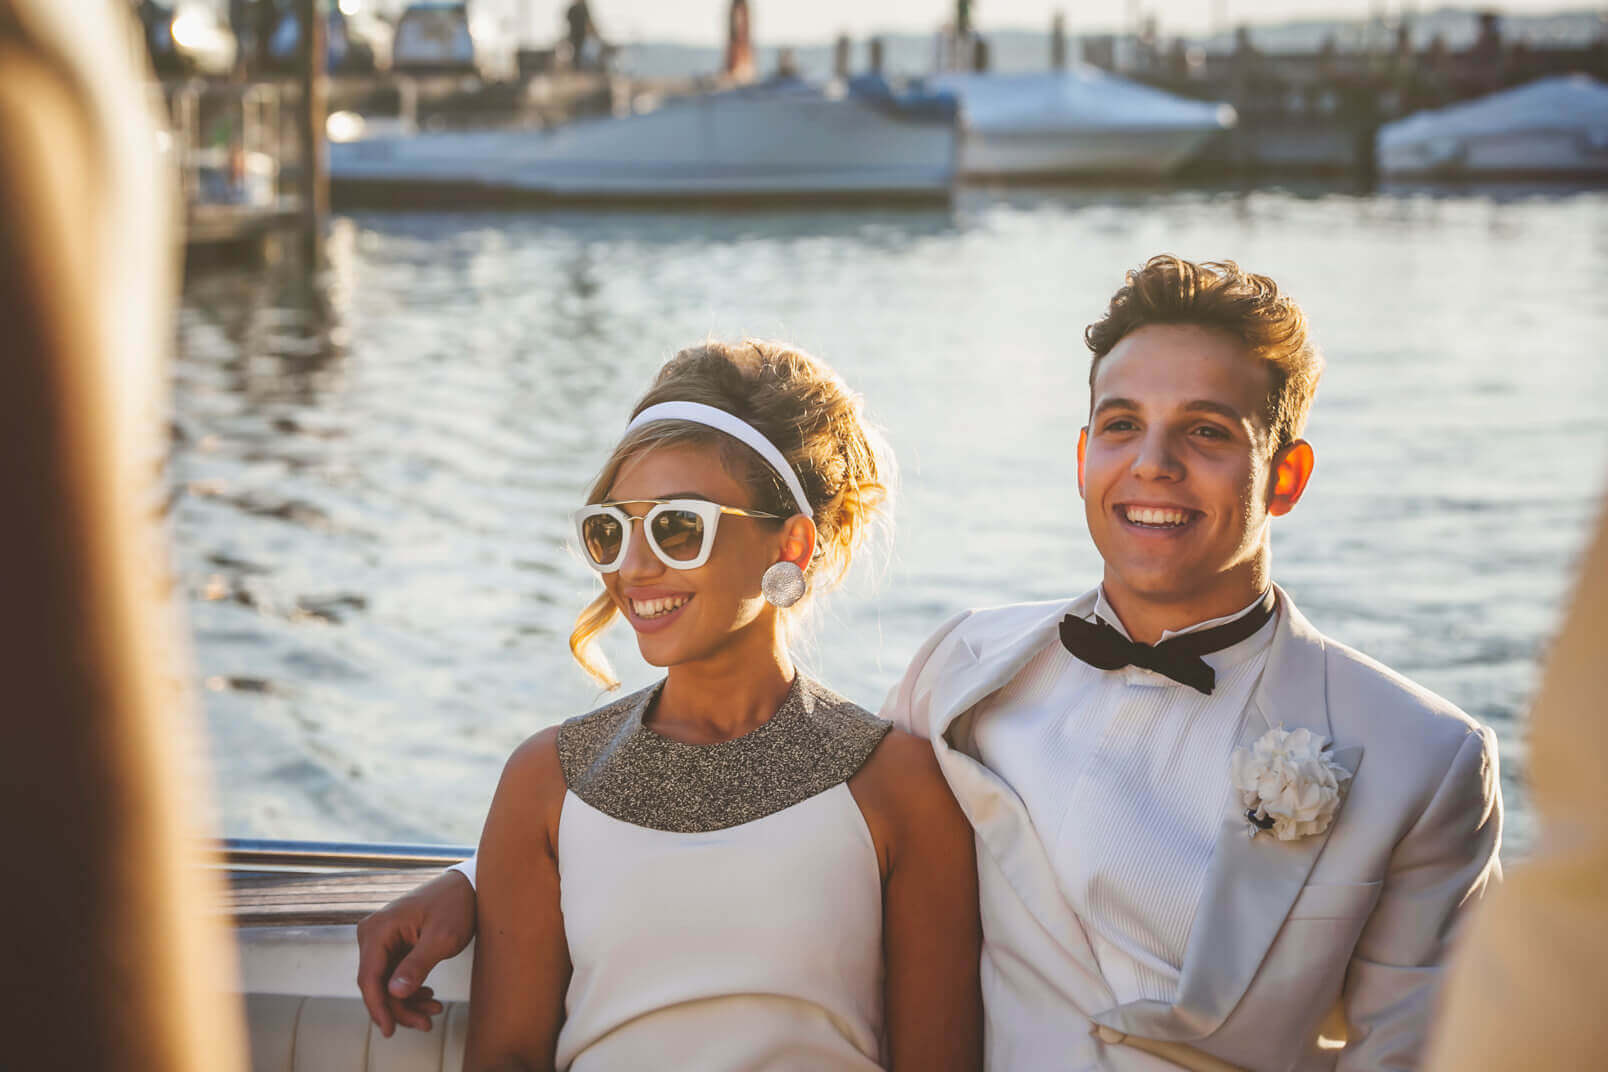 Candid portrait of the newlyweds on the taxi boat.